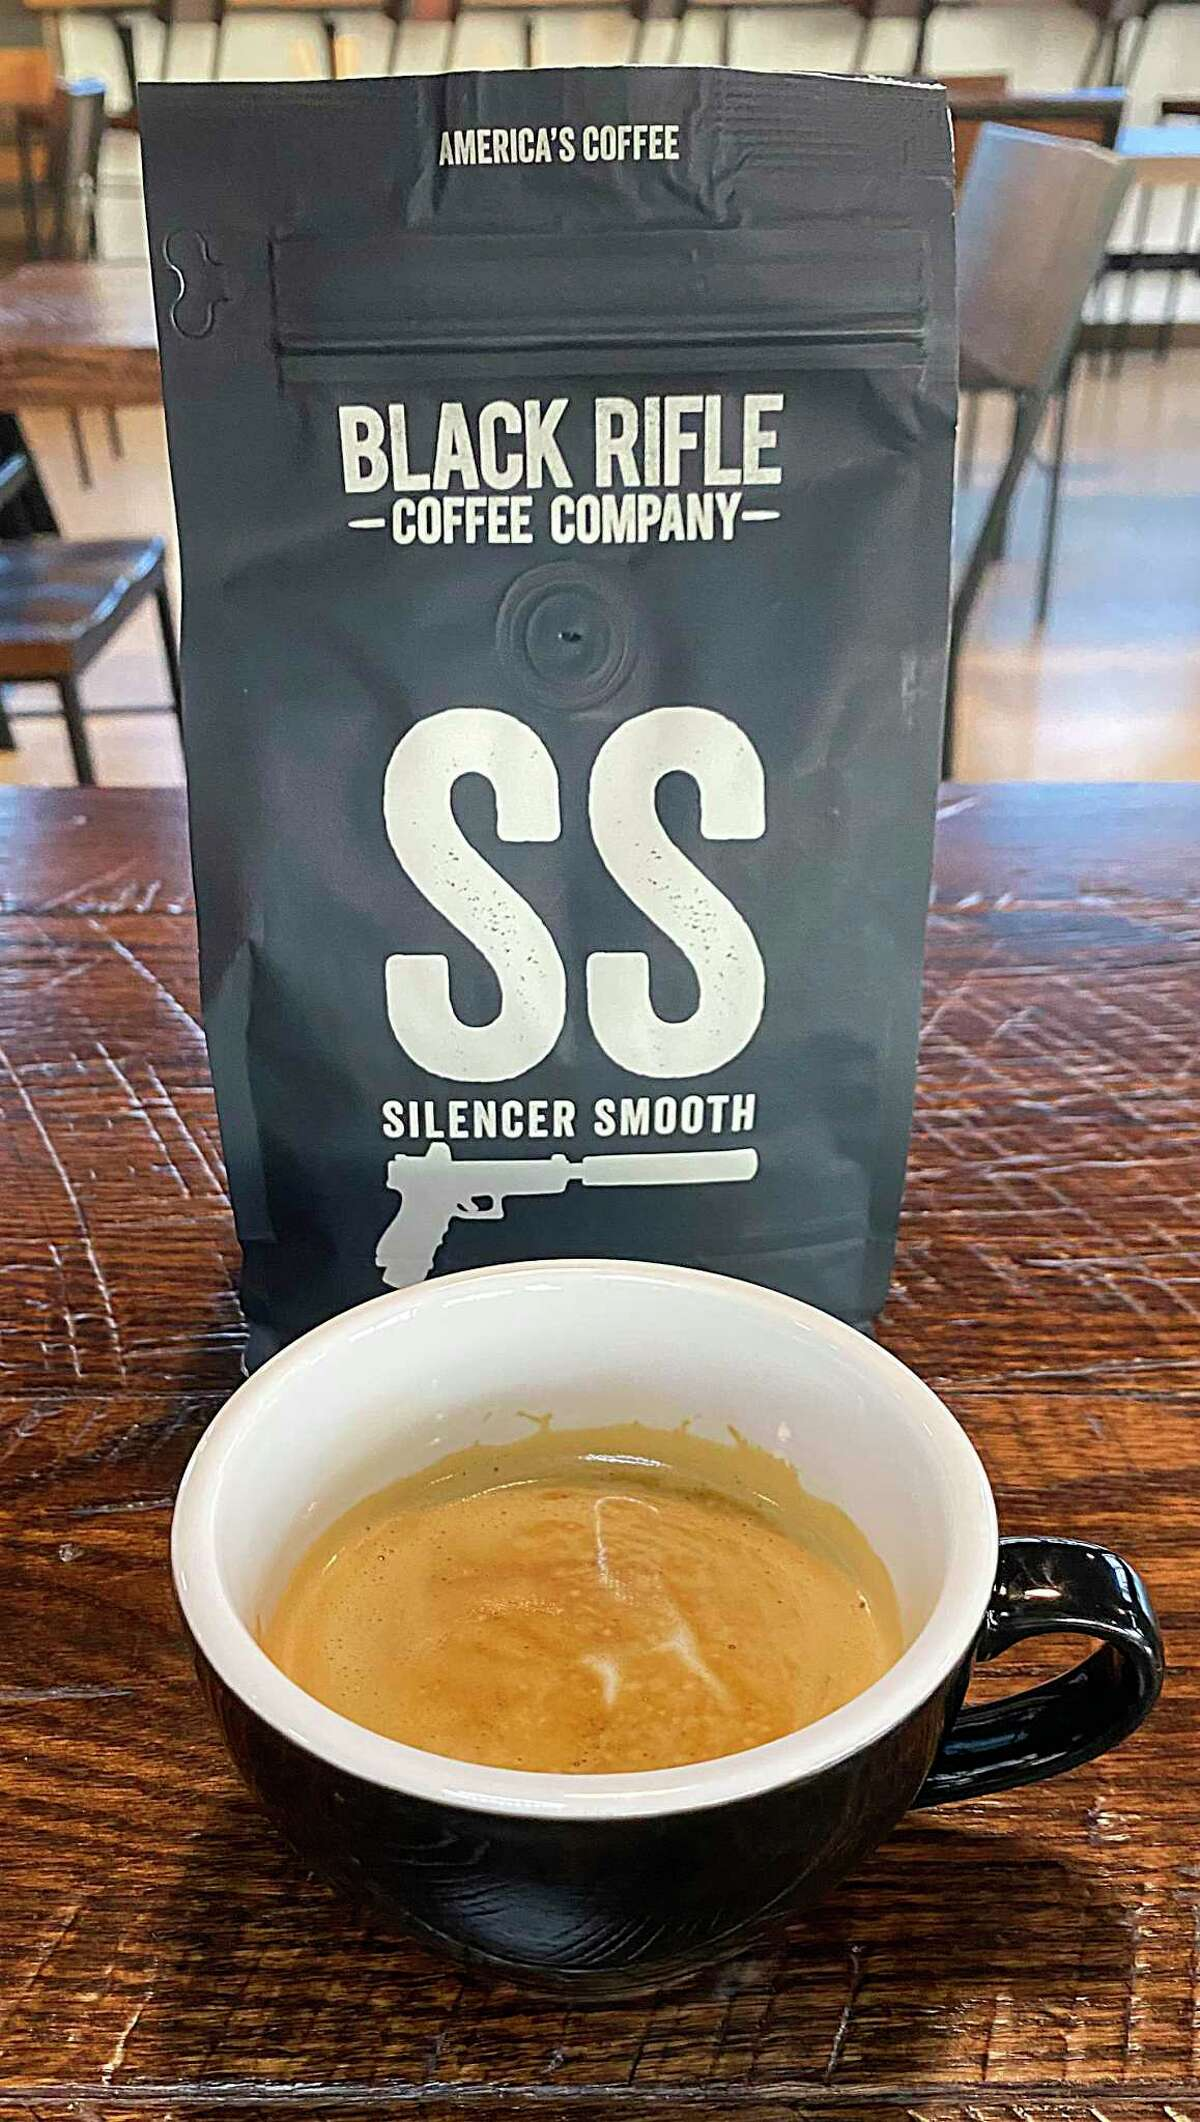 Black Rifle Coffee Co. on Bitters Road sells coffee beans and coffee drinks like this cortado.